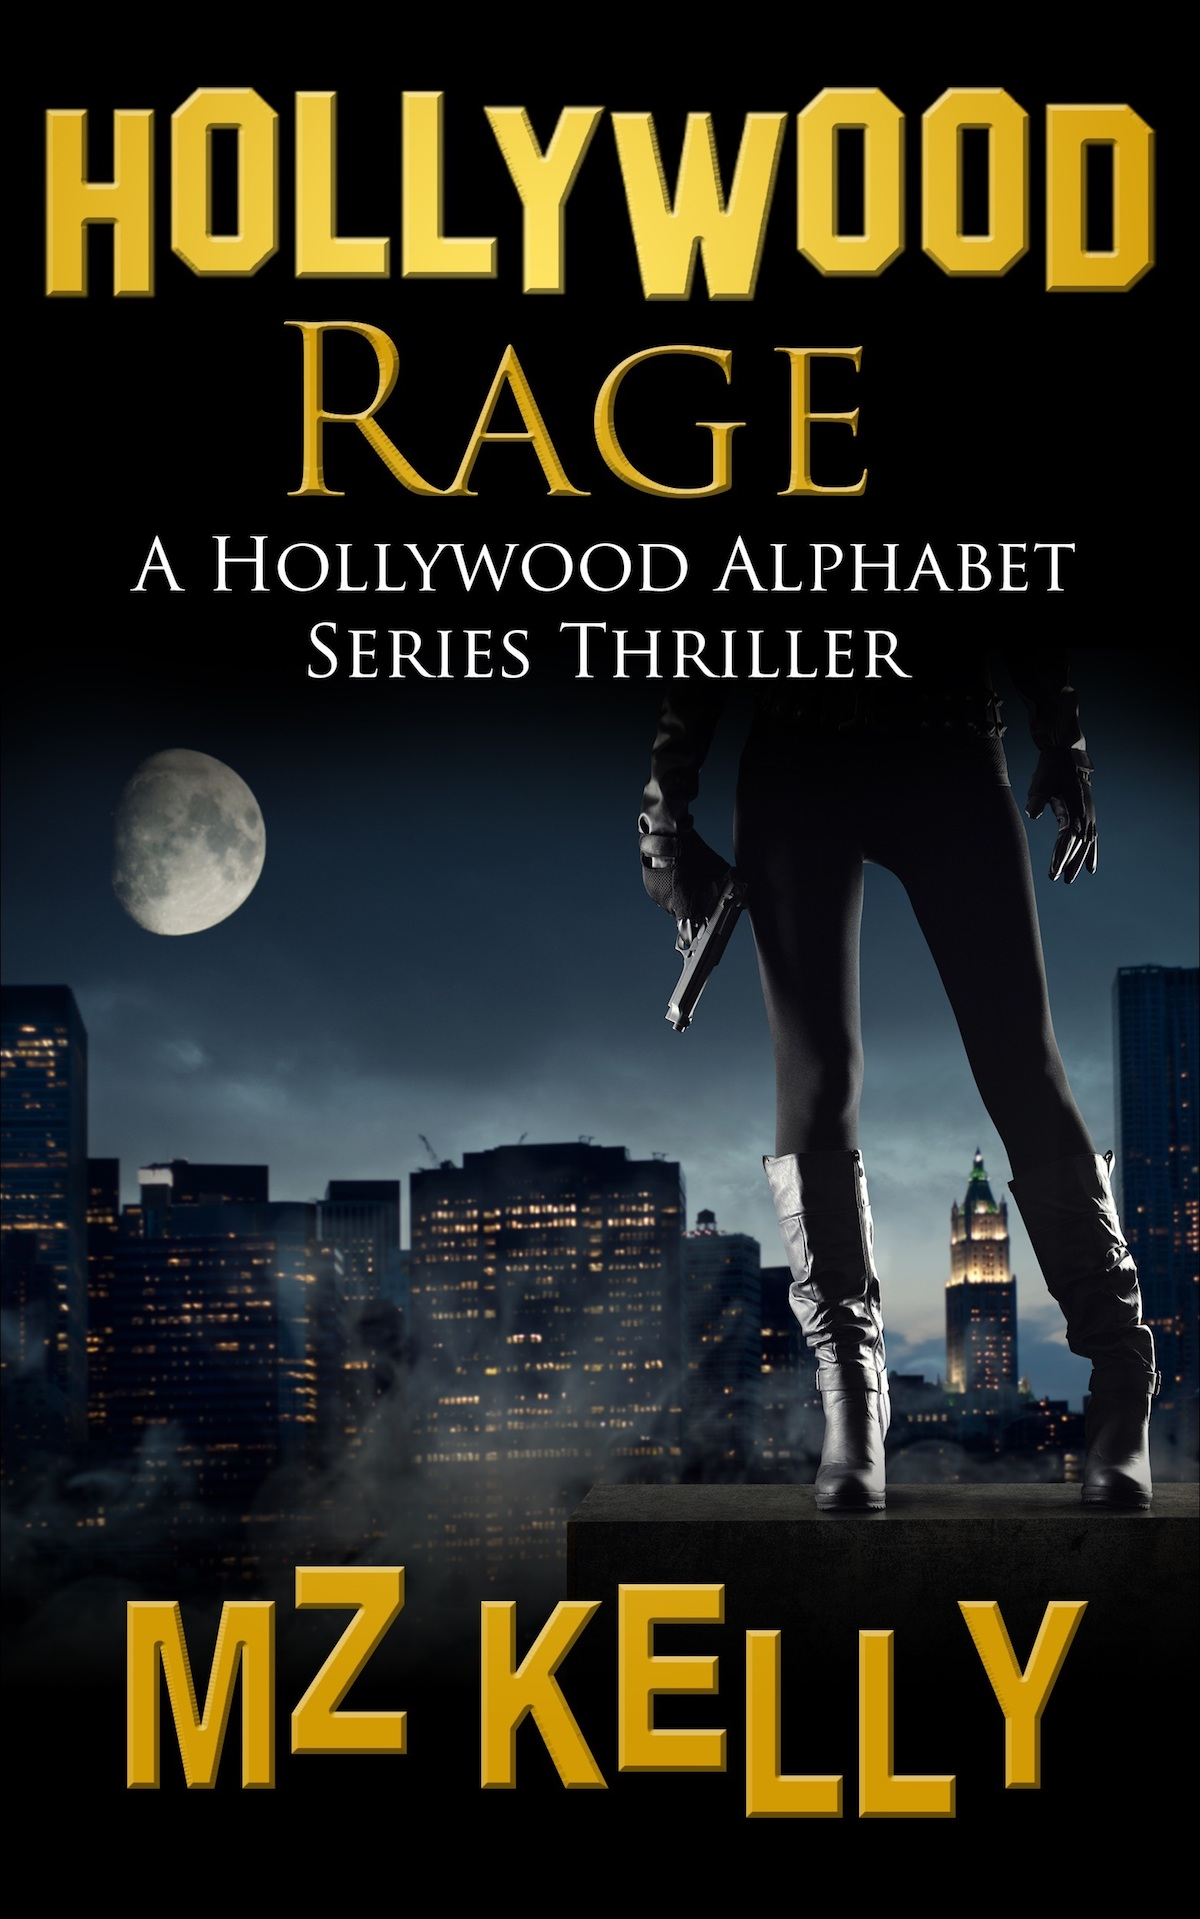 Hollywood Rage